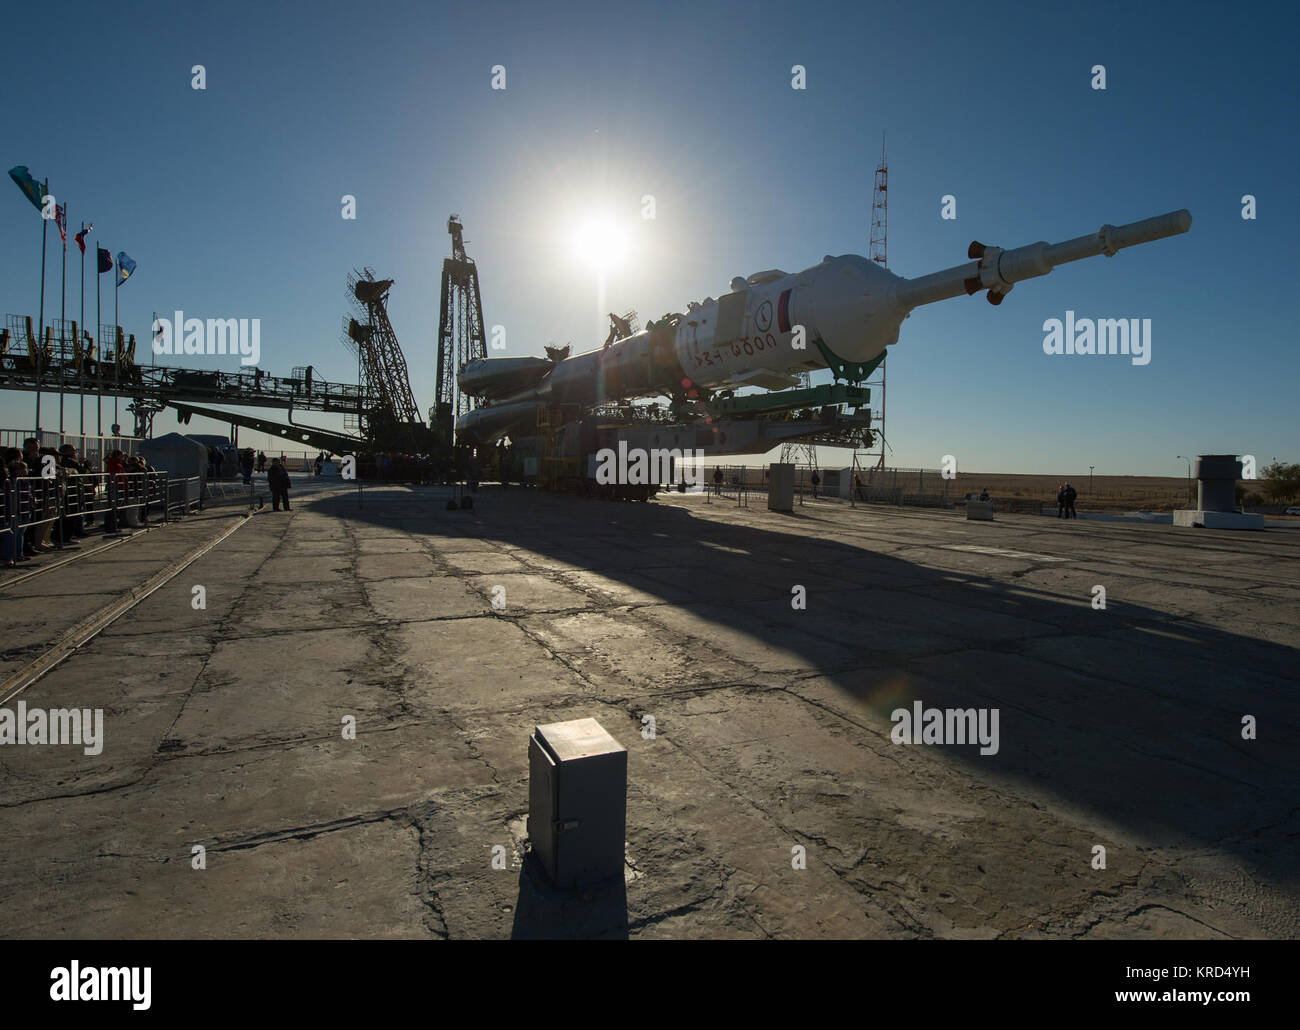 The Soyuz rocket is seen on its launch pad shortly before being lifted into its upright position on Monday, Sept. - Stock Image